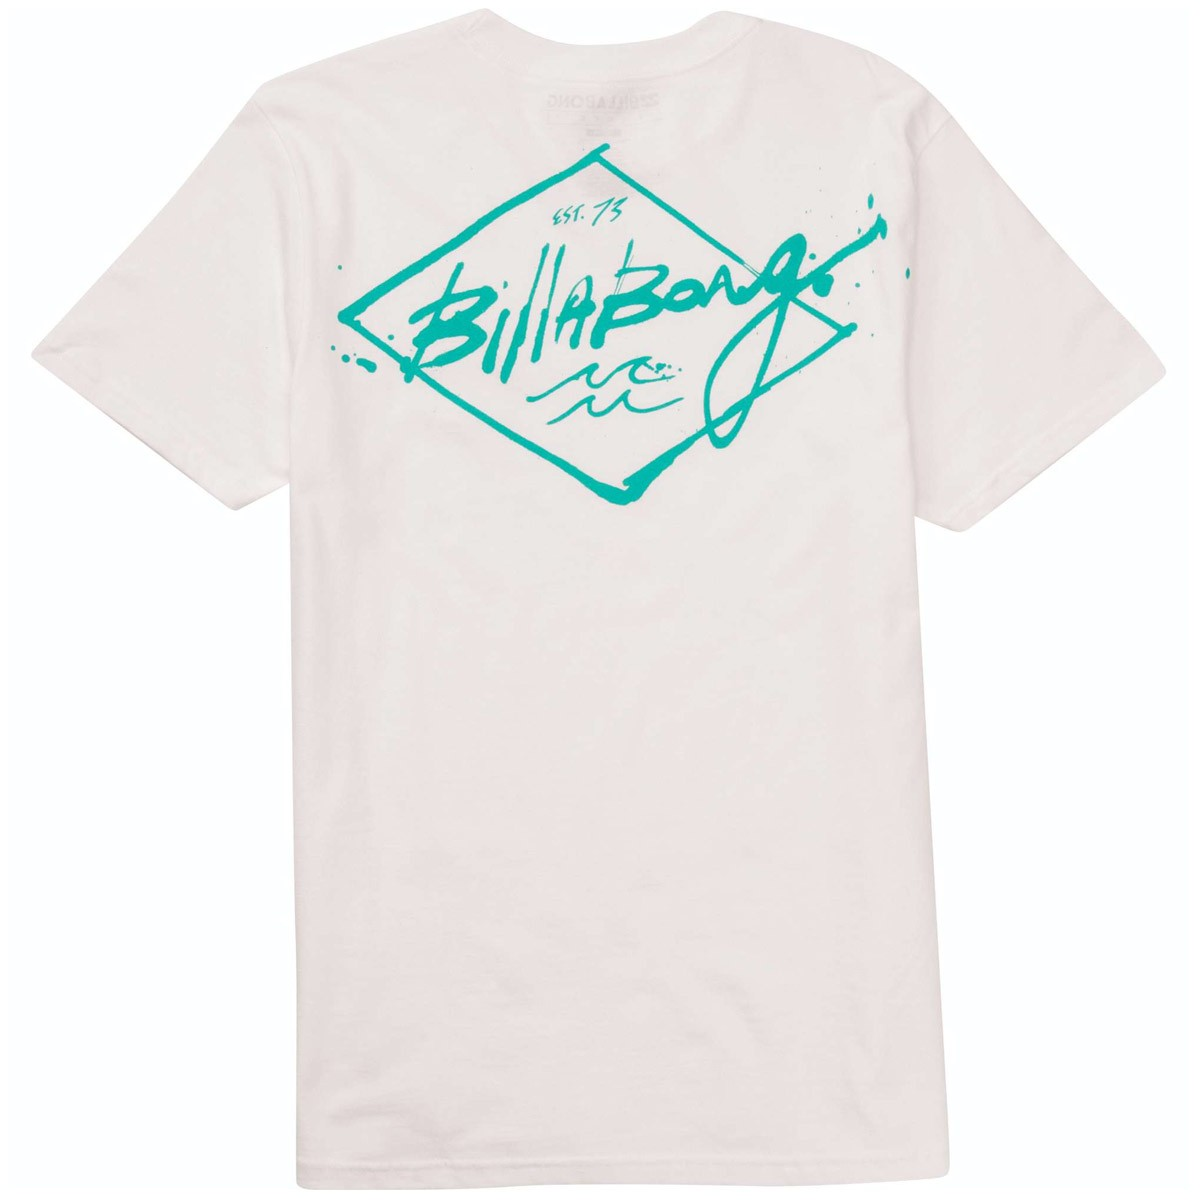 billabong tshirt  Billabong Gesture T-Shirt - White